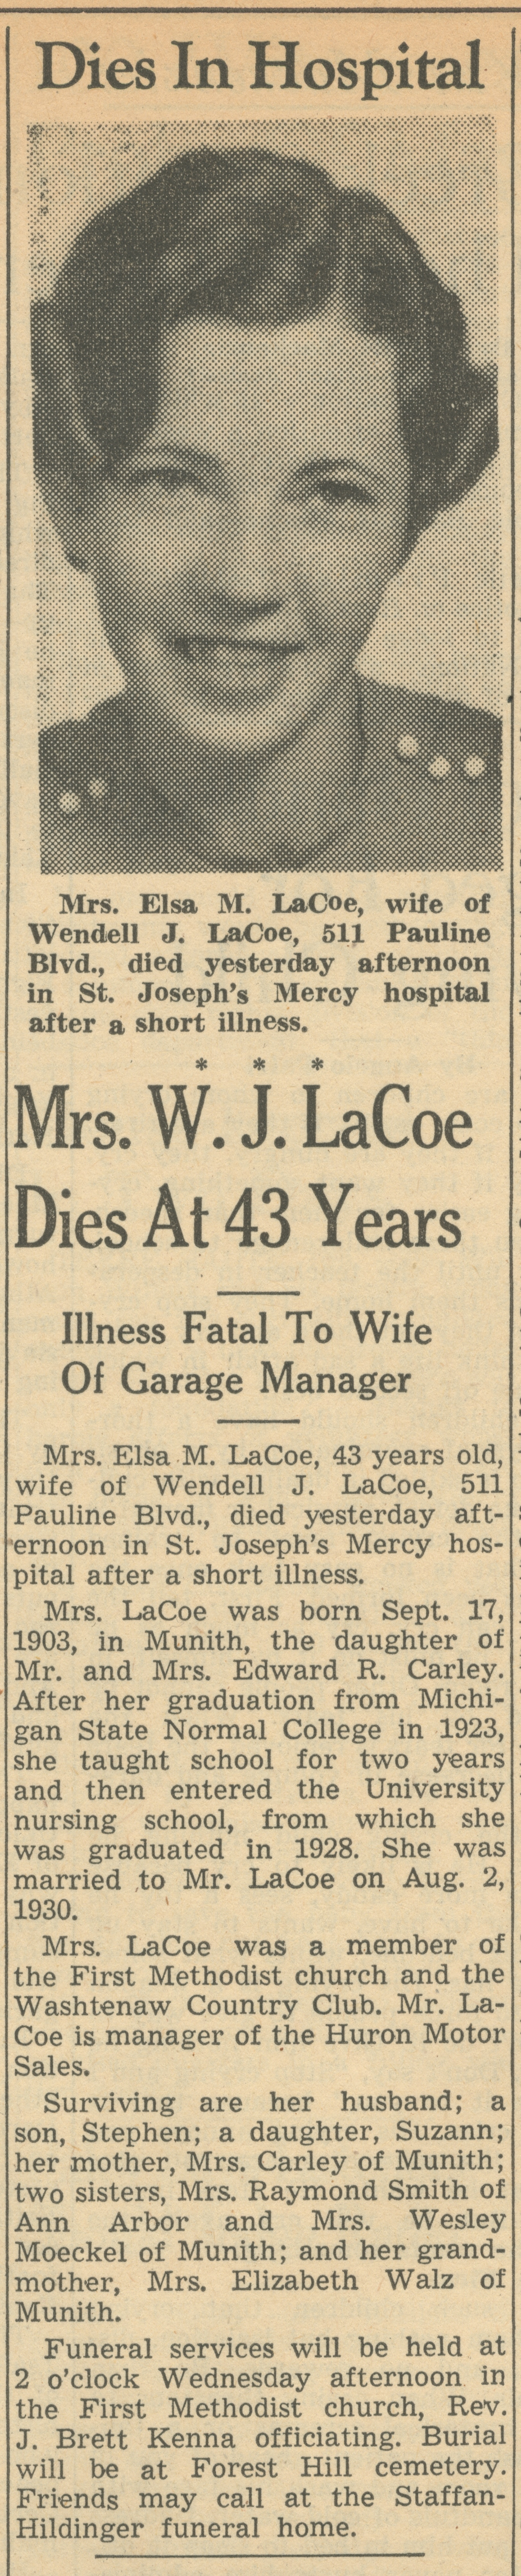 Mrs. W. J. LaCoe Dies At 43 Years image